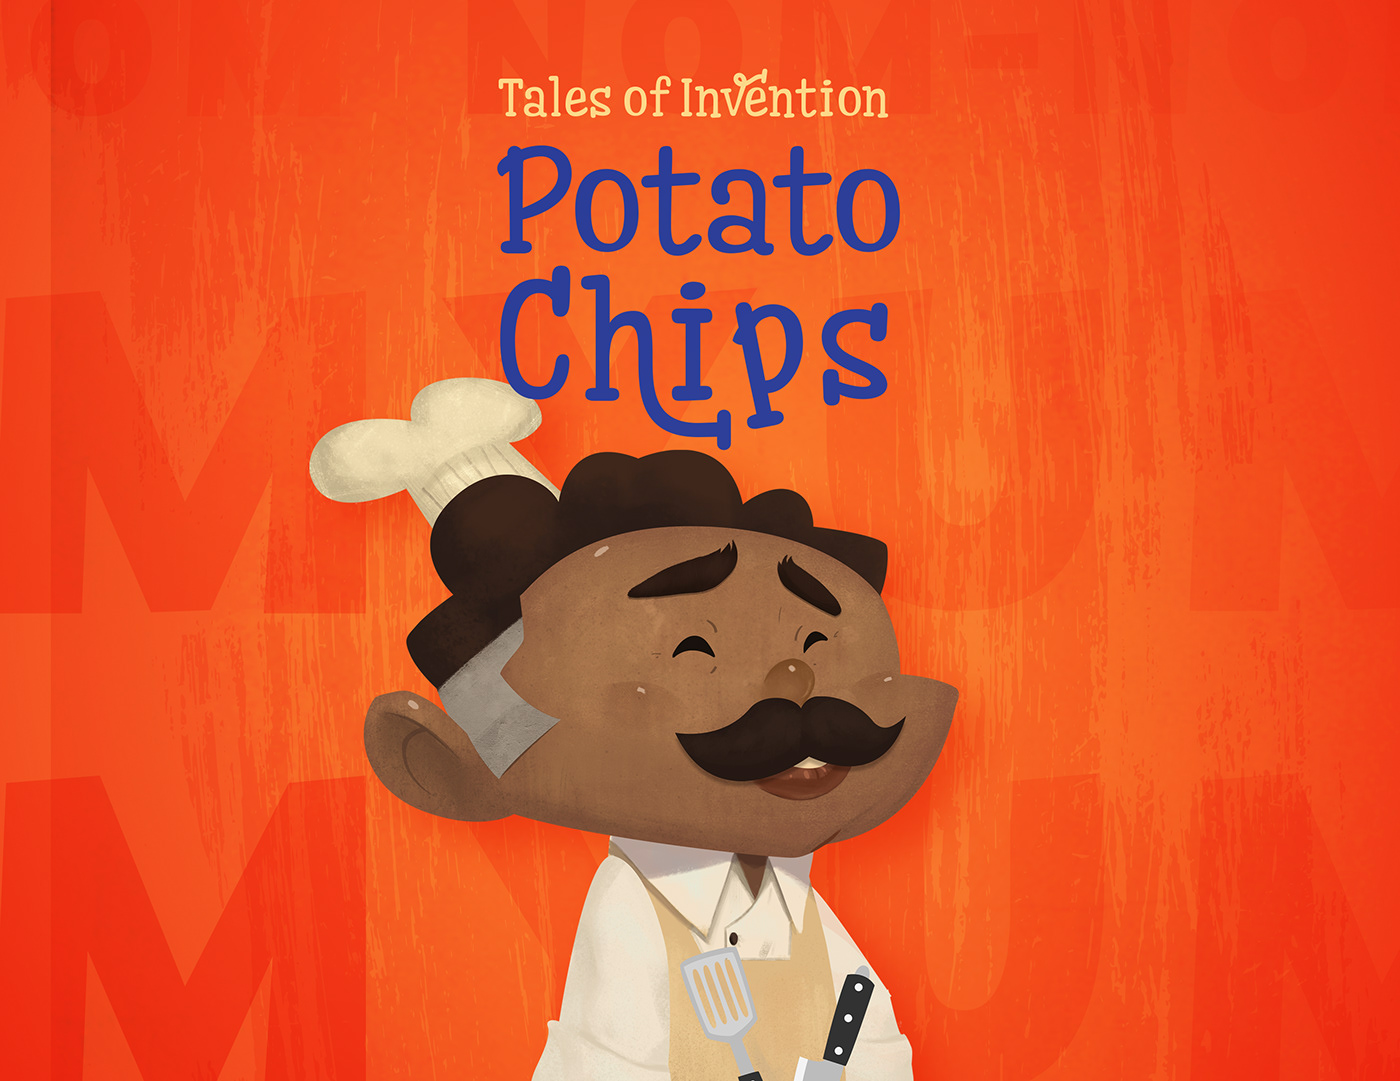 2D amrit Character chips geroge crum Illustrator invention potato storybook TALES